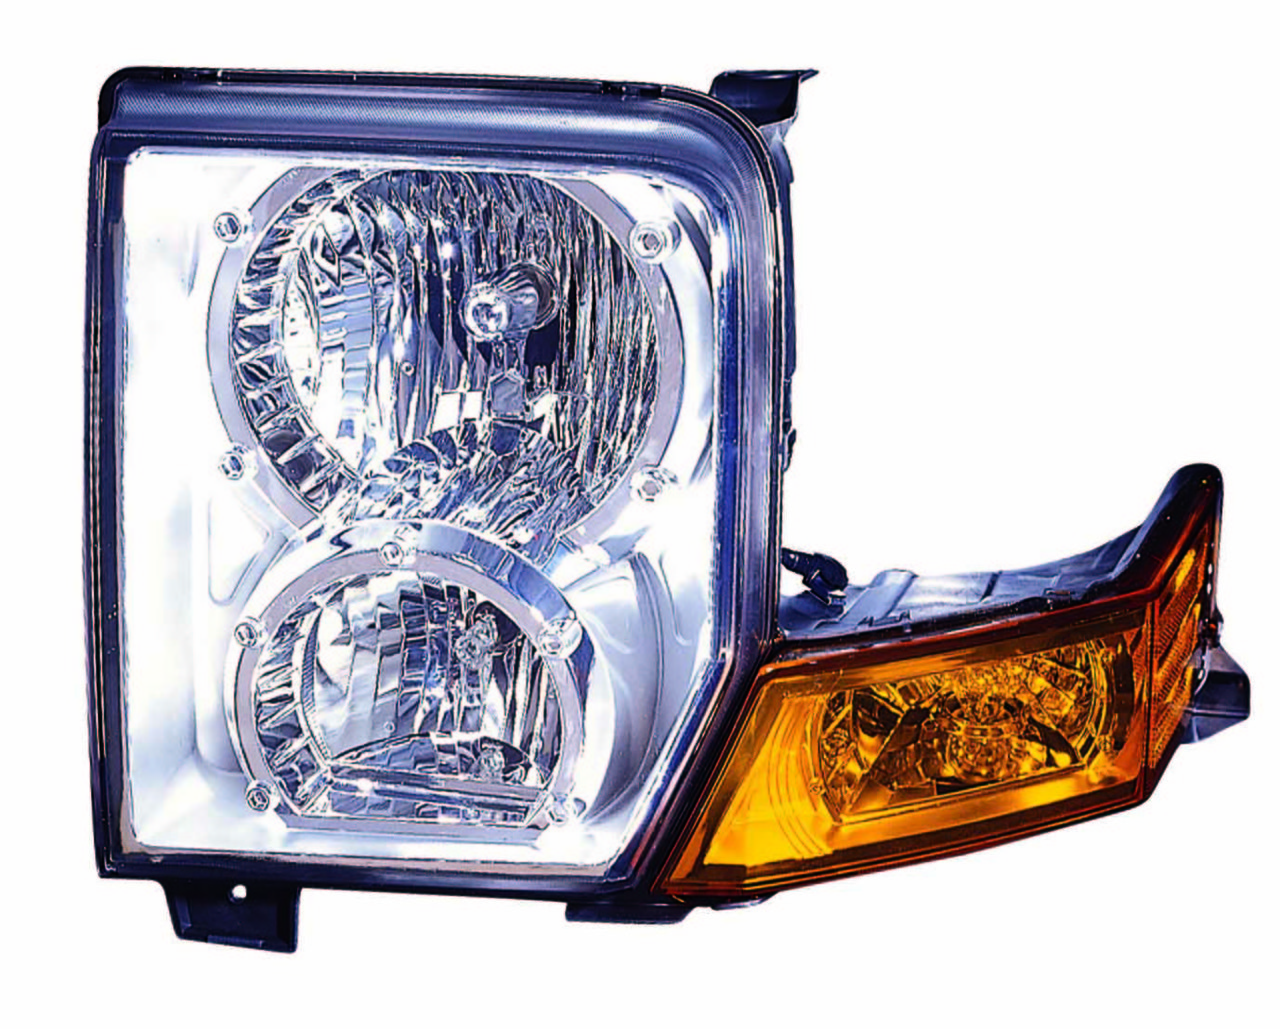 Jeep Commander 2006 2007 2008 2009 2010 left driver headlight